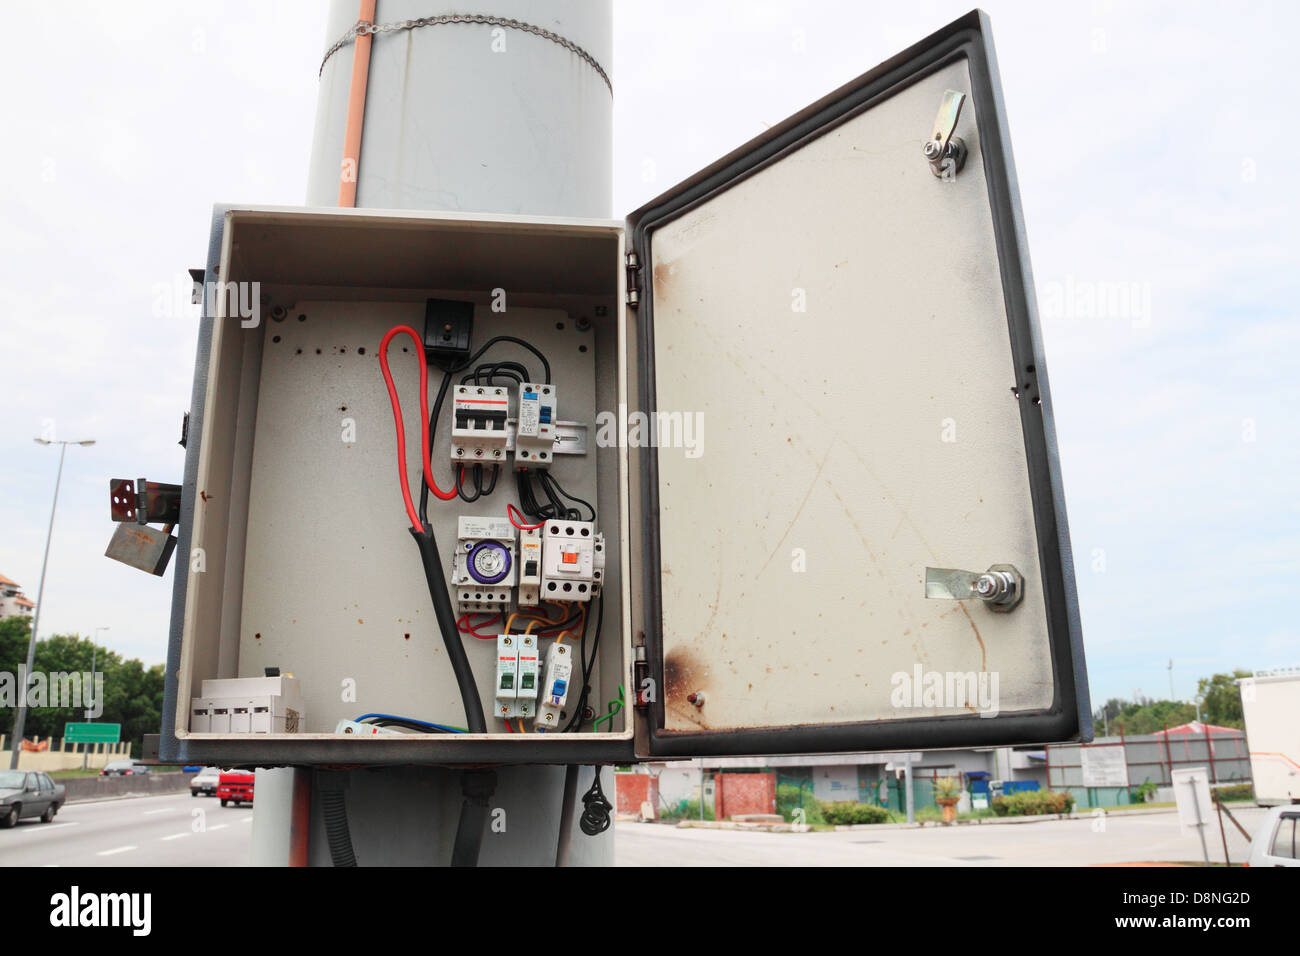 Safety fuse box that has been illegally brake open. Stock Photo